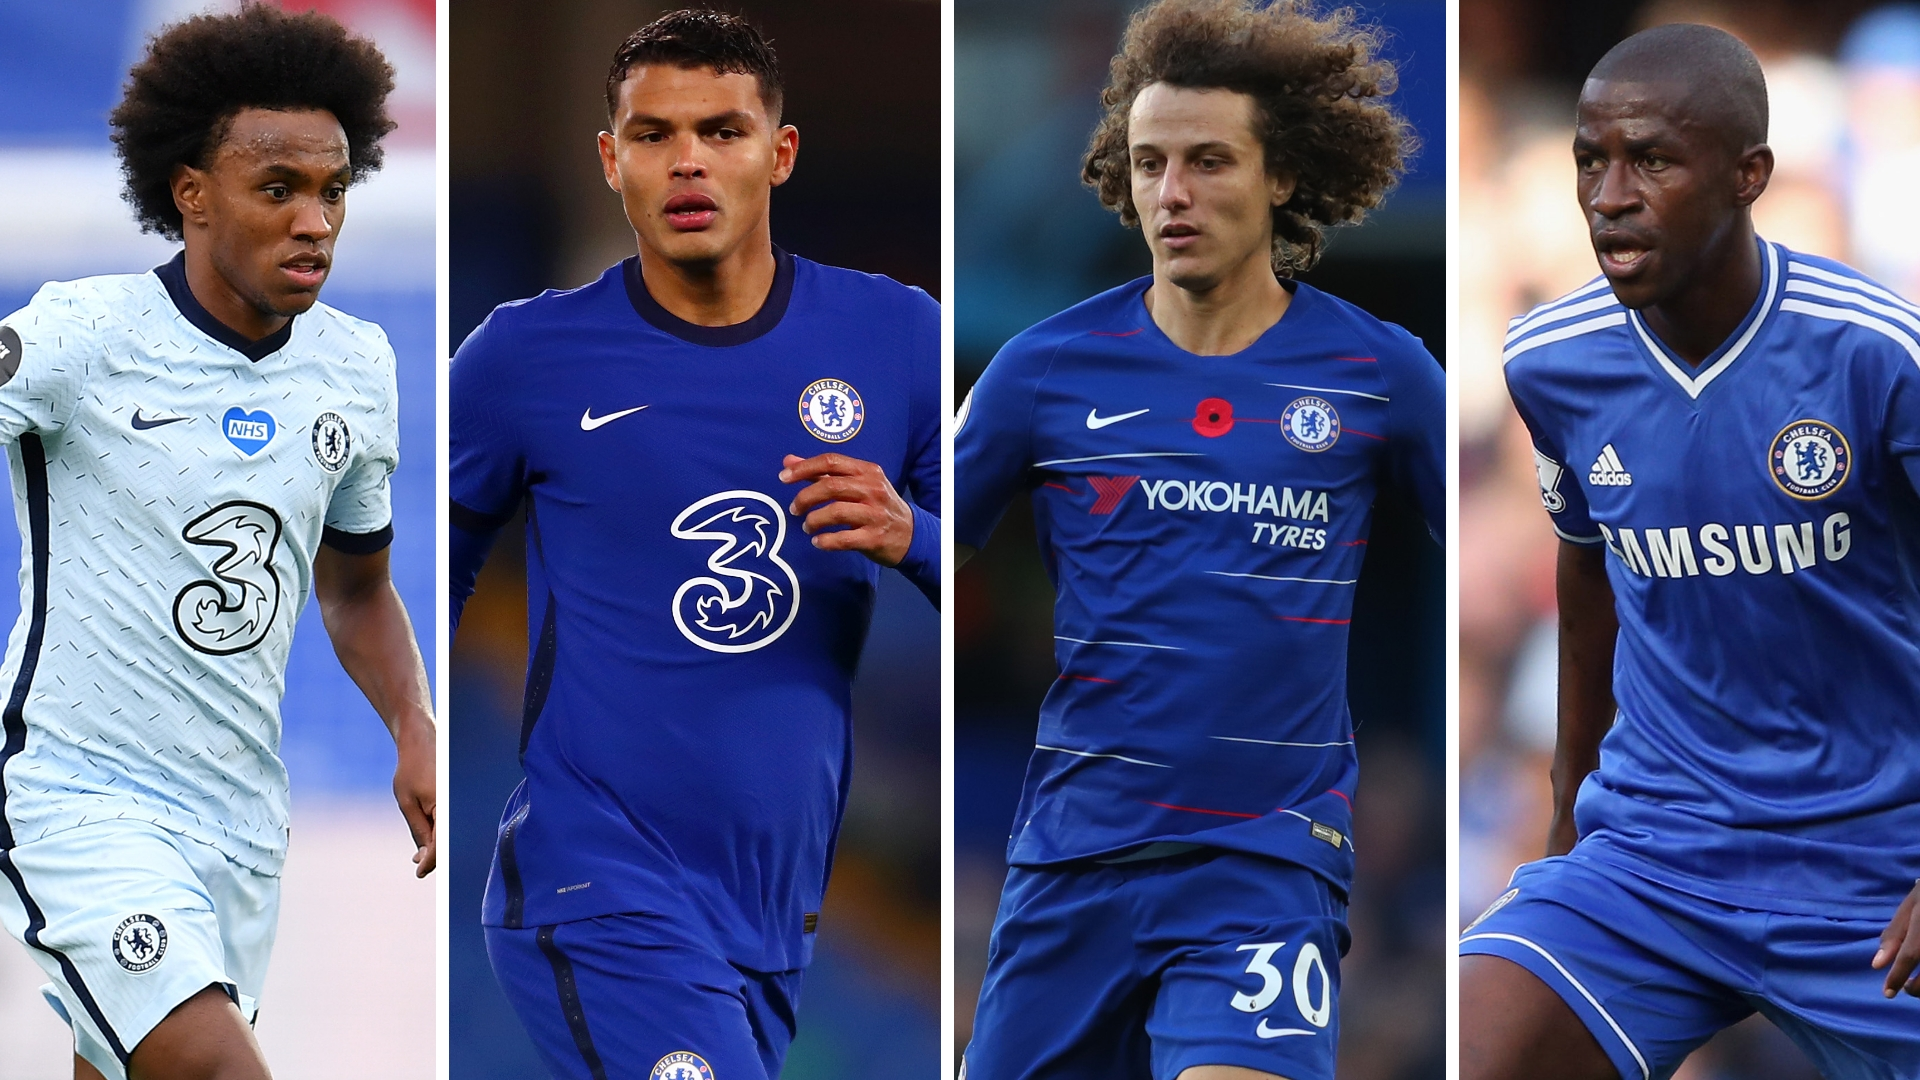 Thiago Silva out to emulate Luiz, Willian & Ramires as Chelsea's latest Brazilian star